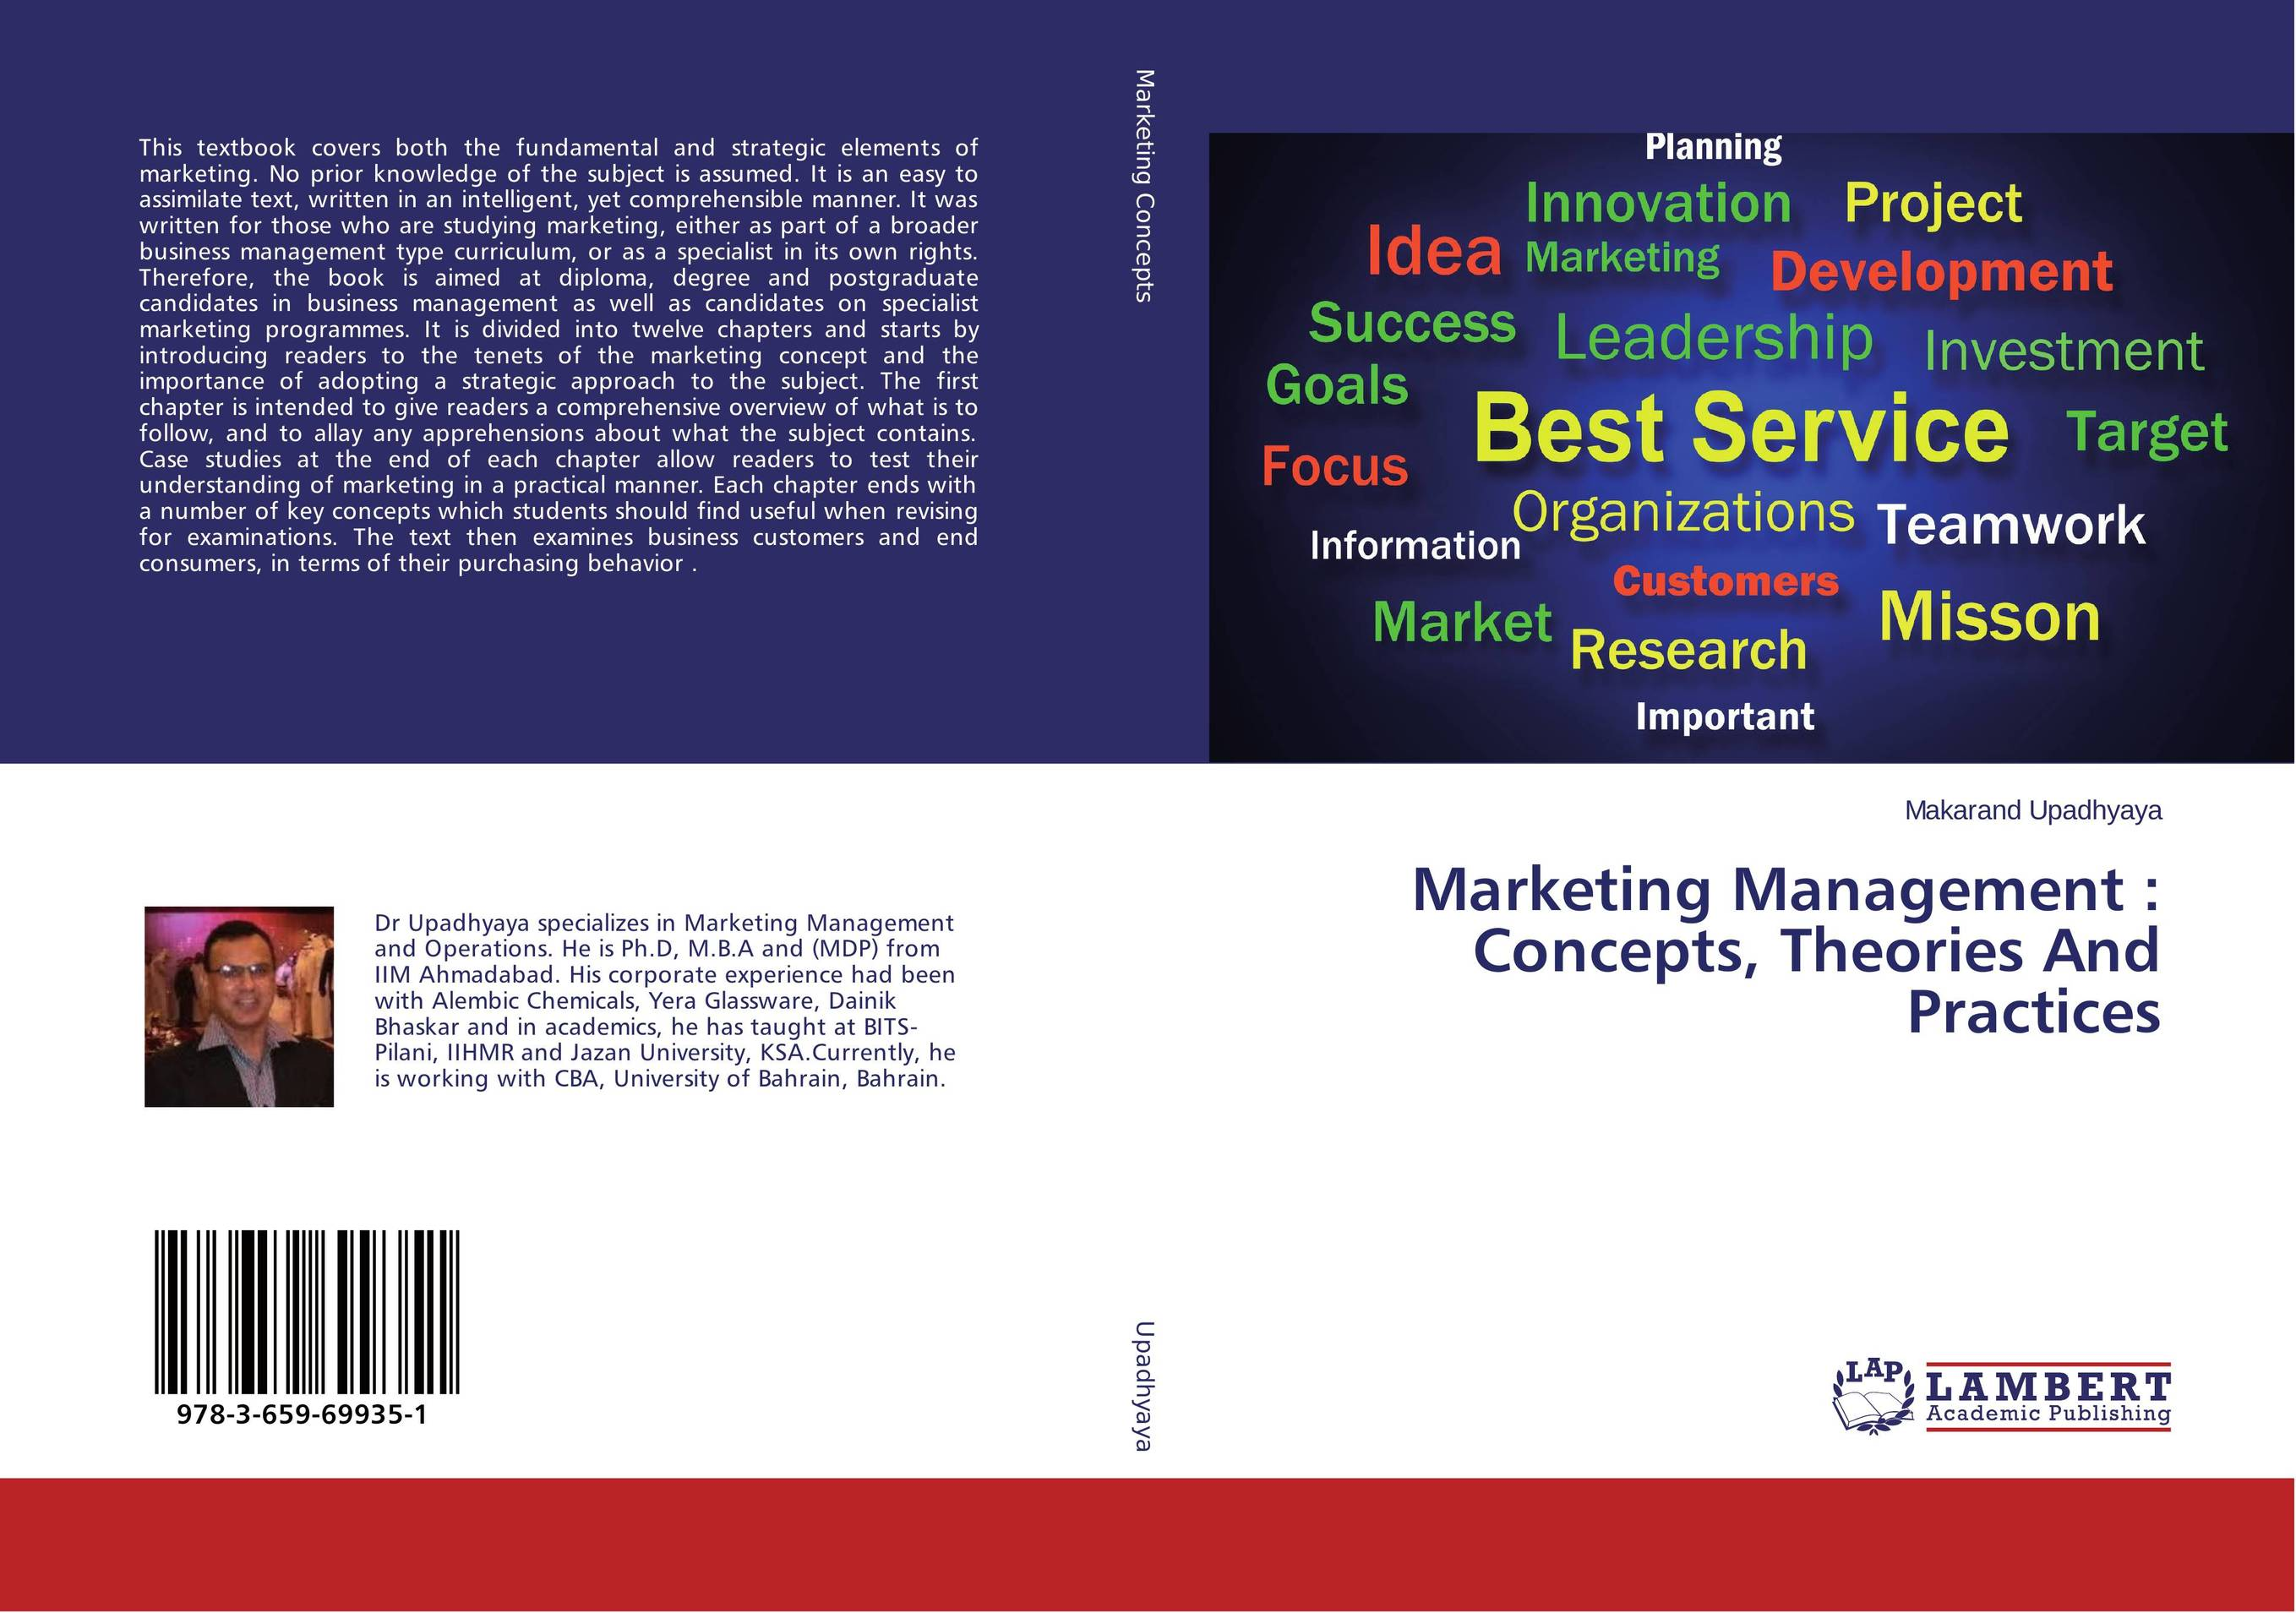 Marketing Management : Concepts, Theories And Practices agricultural marketing management